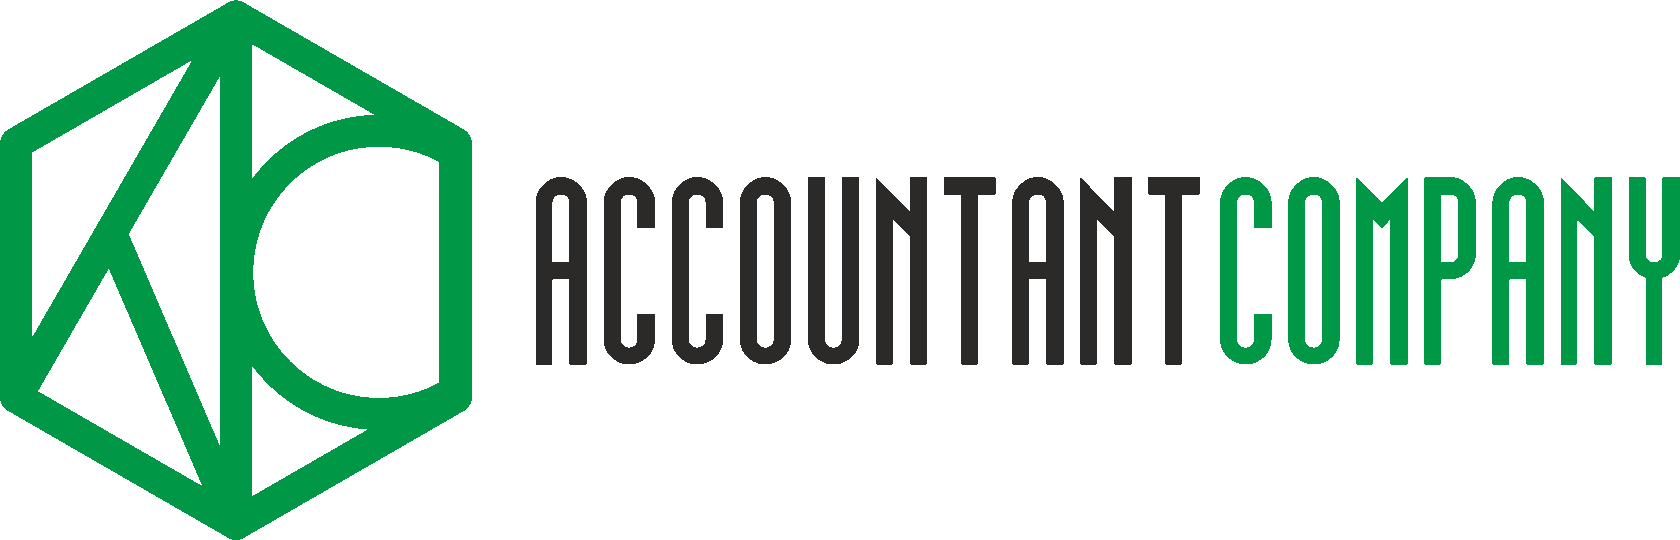 ACCOUNTANT COMPANY